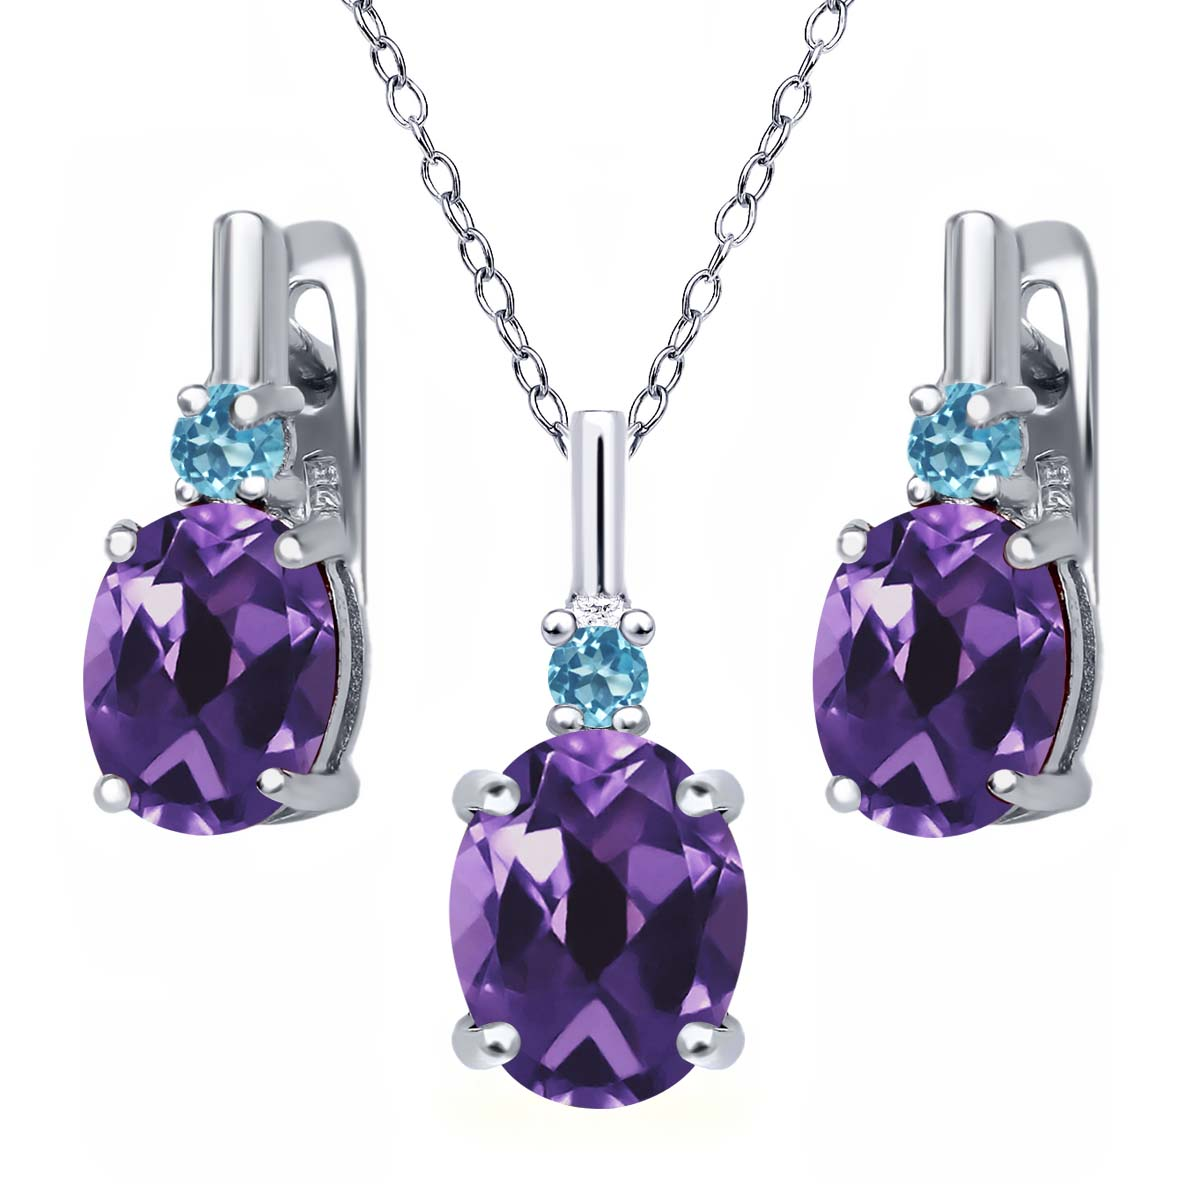 5.06 Ct Amethyst and Swiss Blue Simulated Topaz 925 Silver Pendant Earrings Set by